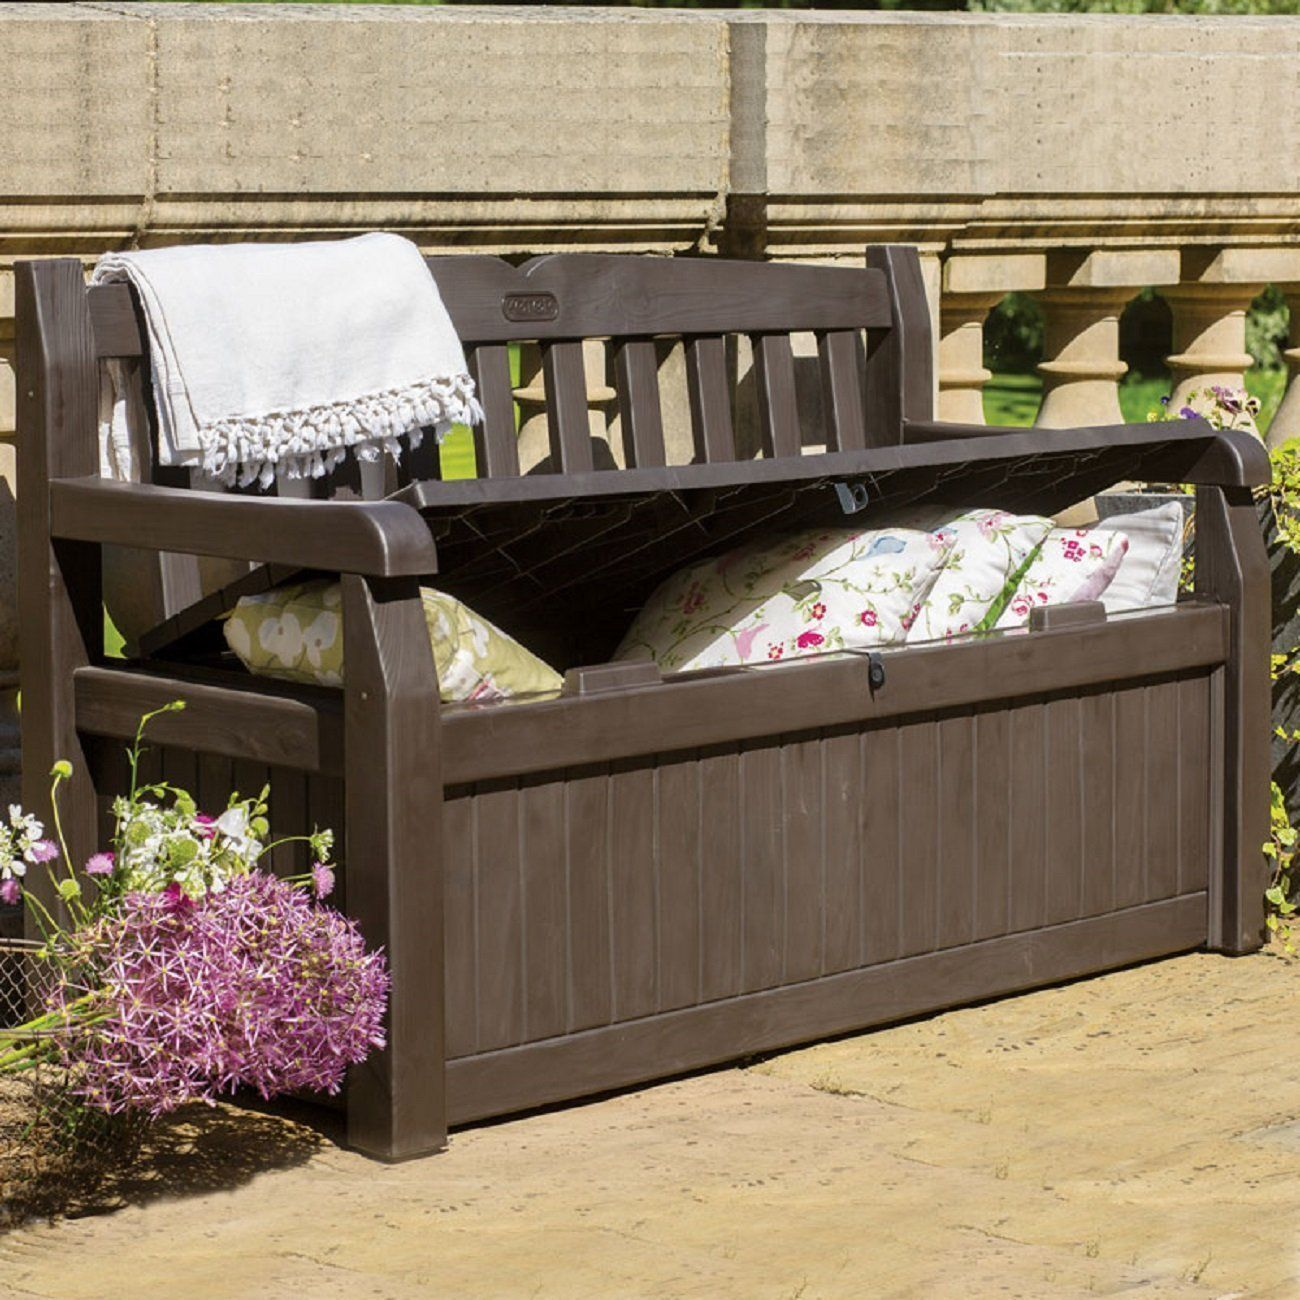 Garden Furniture - Outdoor Storage Bench Patio Box 70 Gallon Garden Deck Patio Pool Furniture Brown